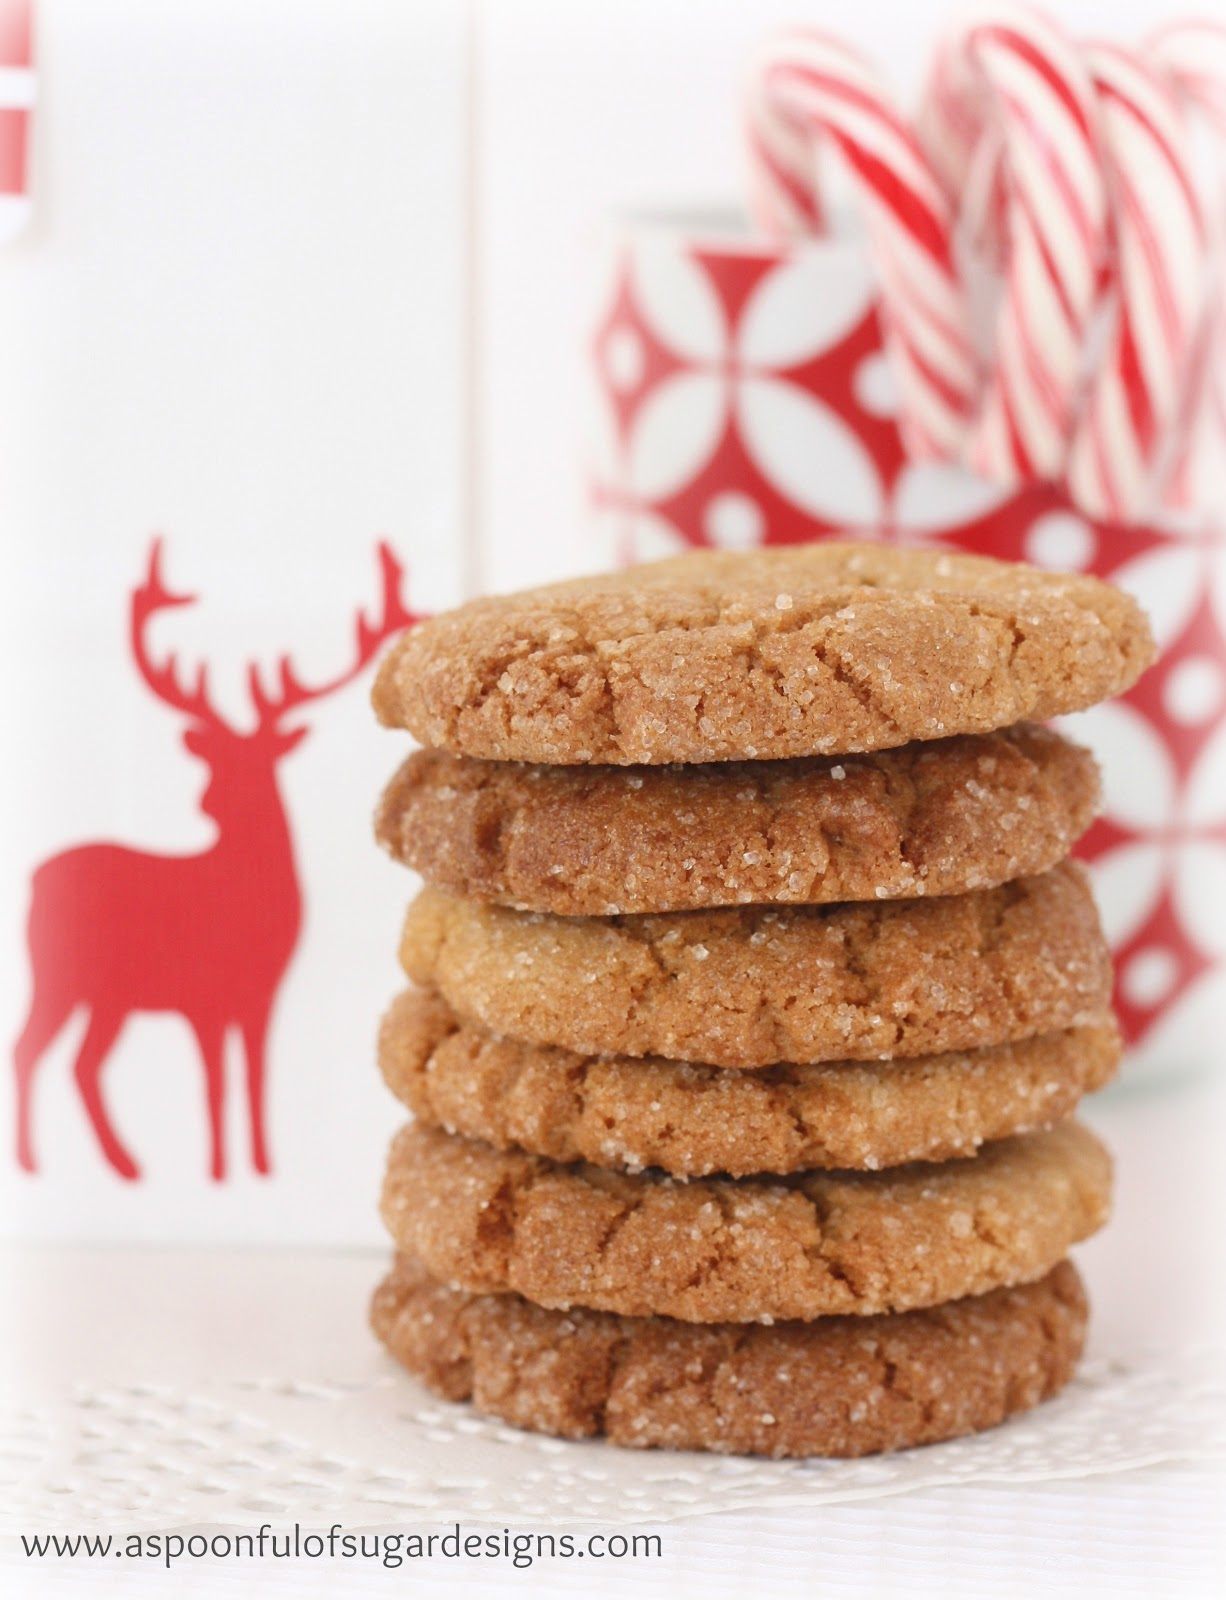 Brown Sugar Cookies - A Spoonful of Sugar